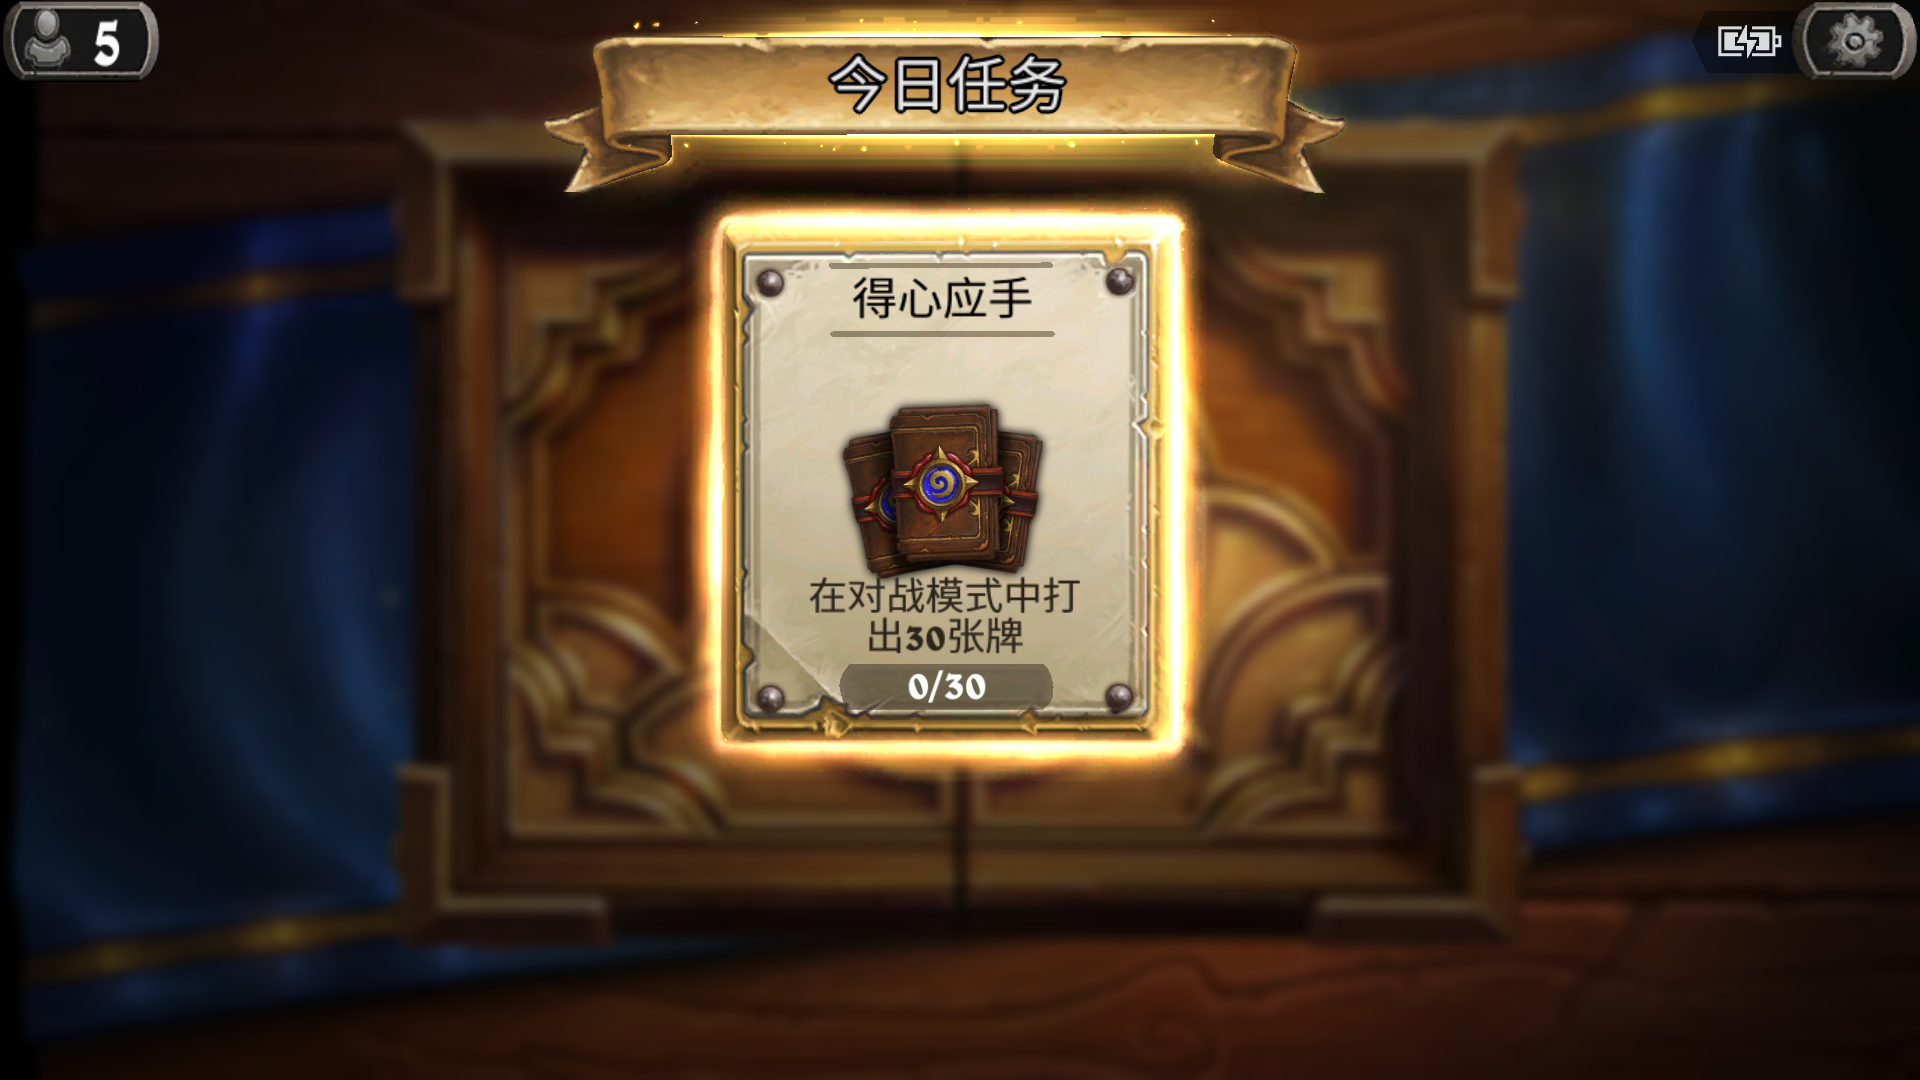 Screenshot_2017-04-07-22-03-50-774_com.blizzard.wtcg.hearthstone.png